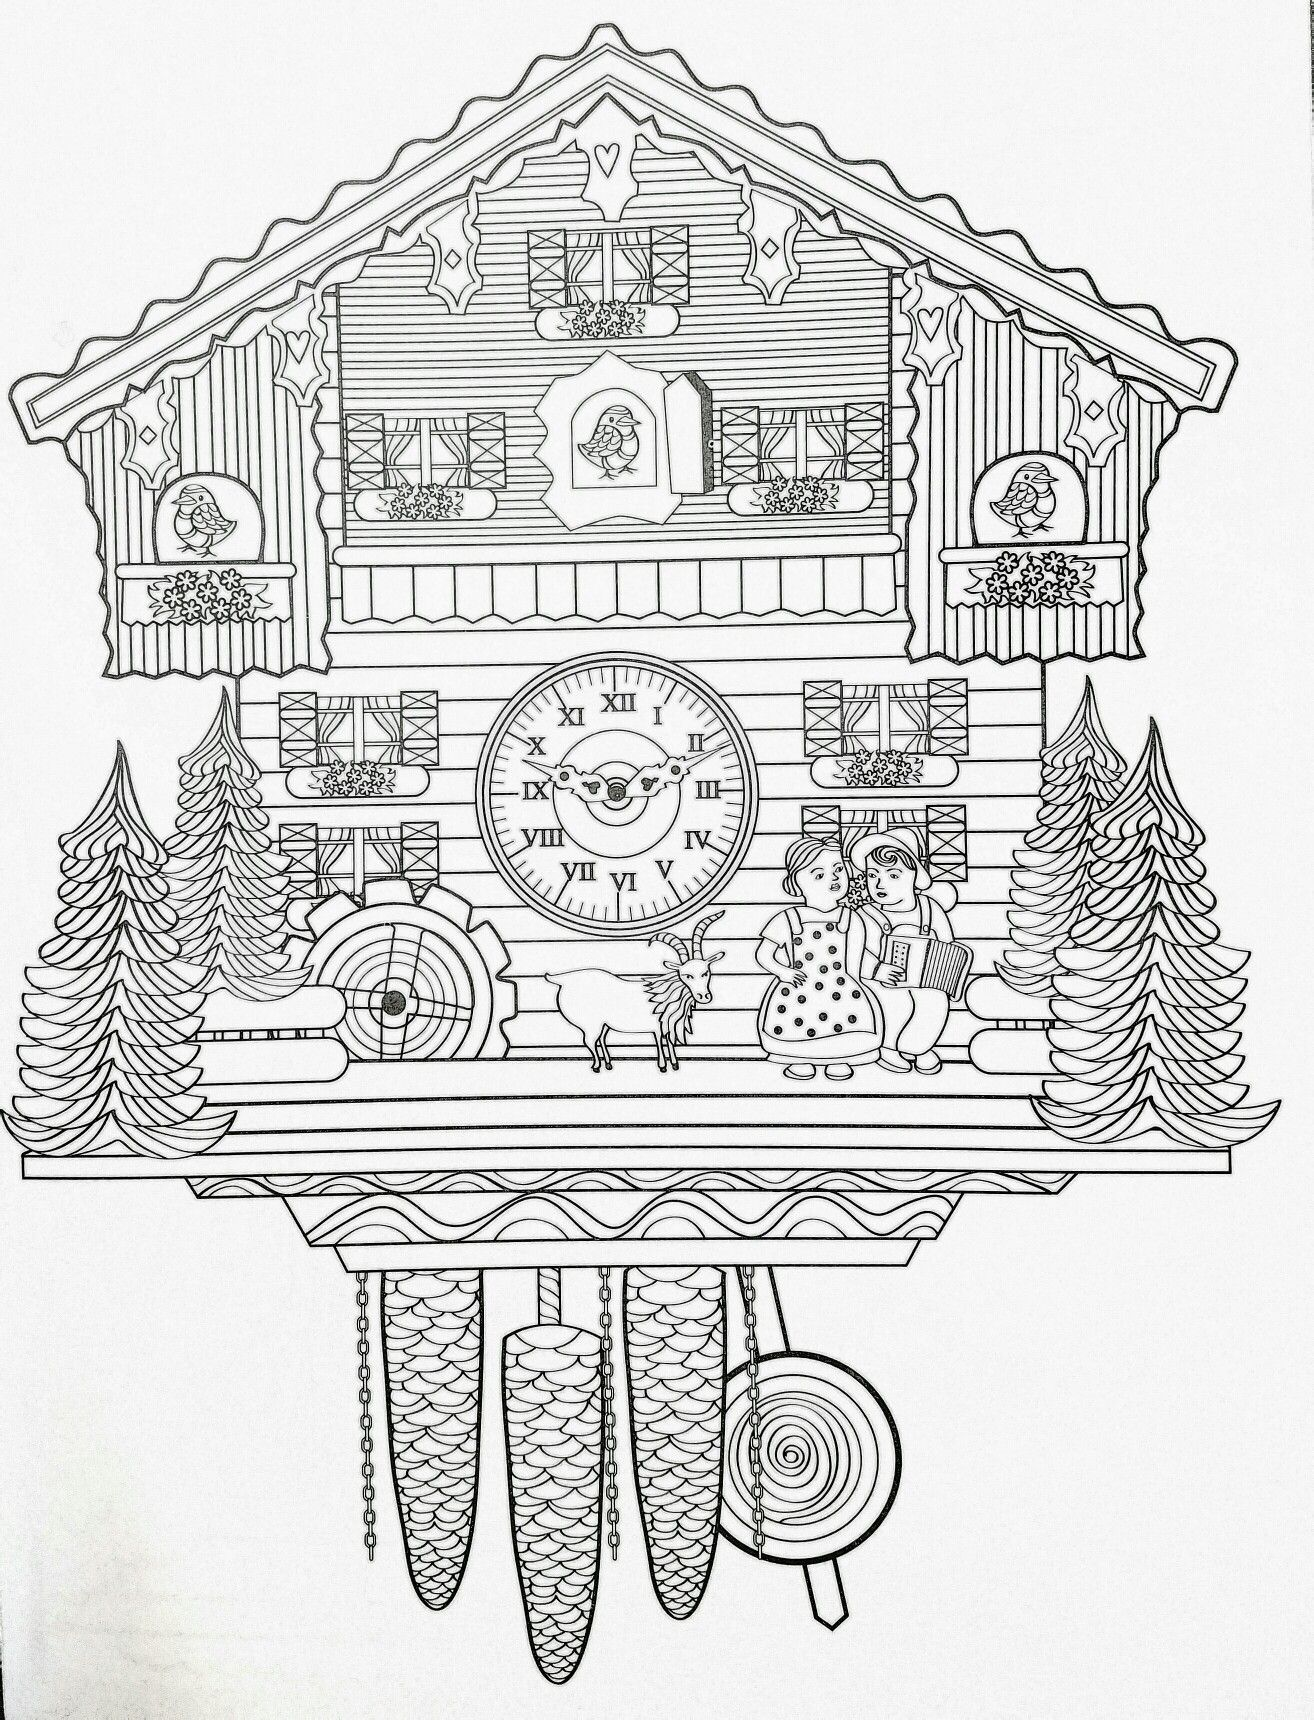 adult coloring page cuckoo clock Coloring Pages for